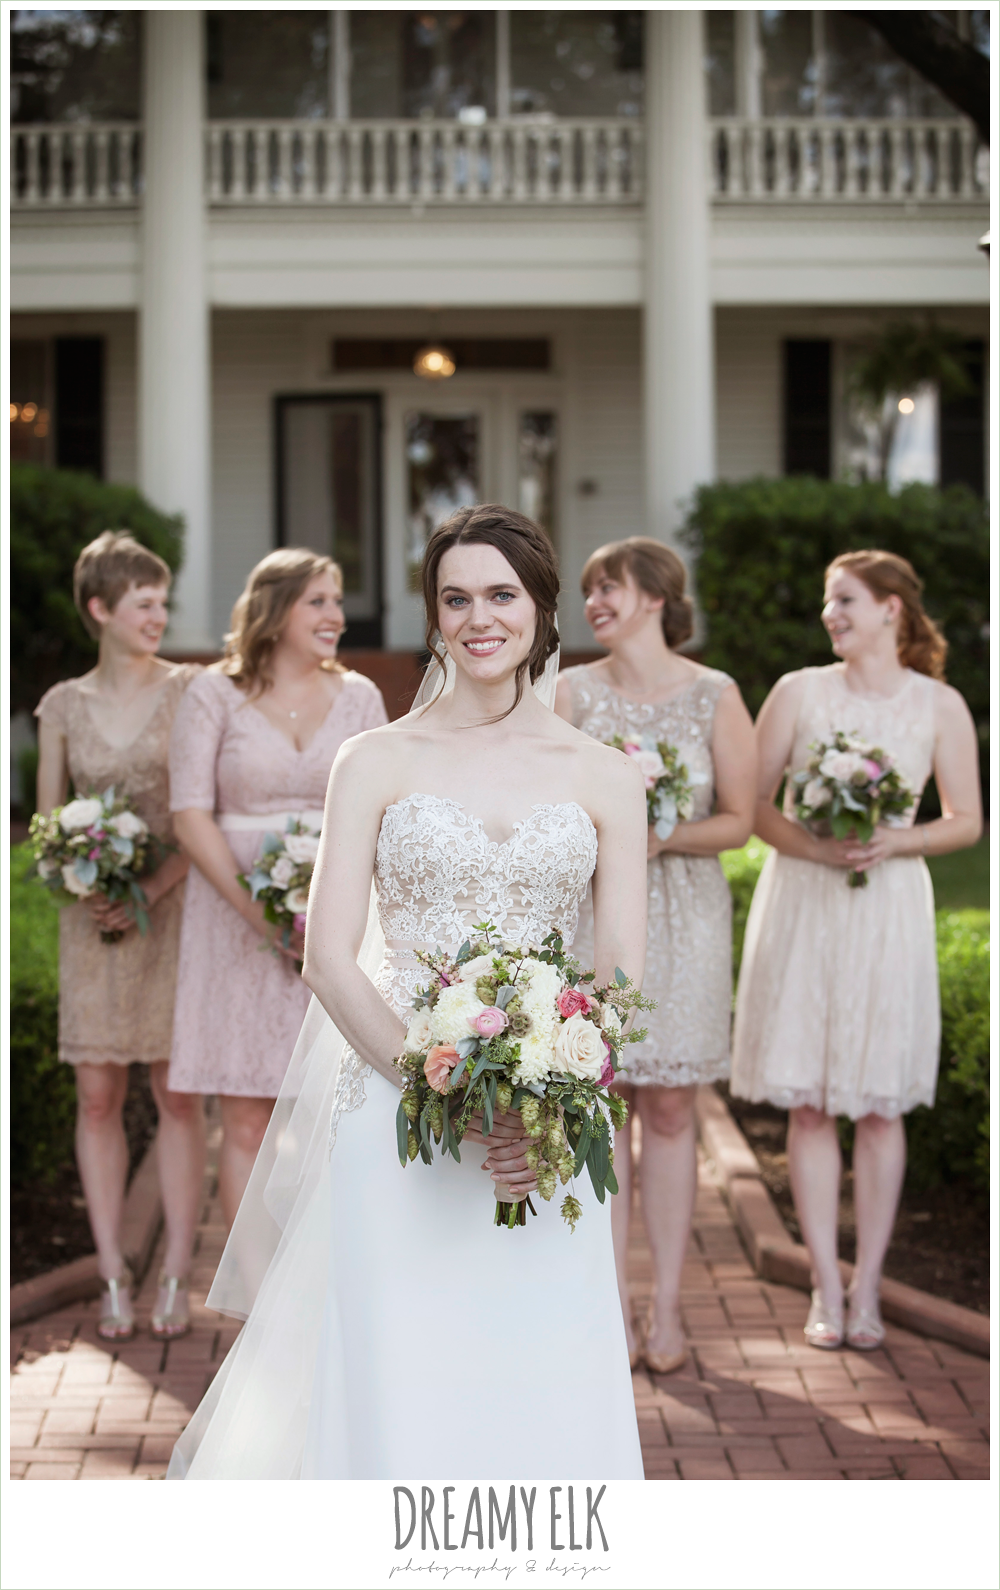 blush tone bridesmaids dresses, sweetheart strapless two tone wedding dress, bouquets of austin, the winfield inn, summer wedding photo {dreamy elk photography and design}